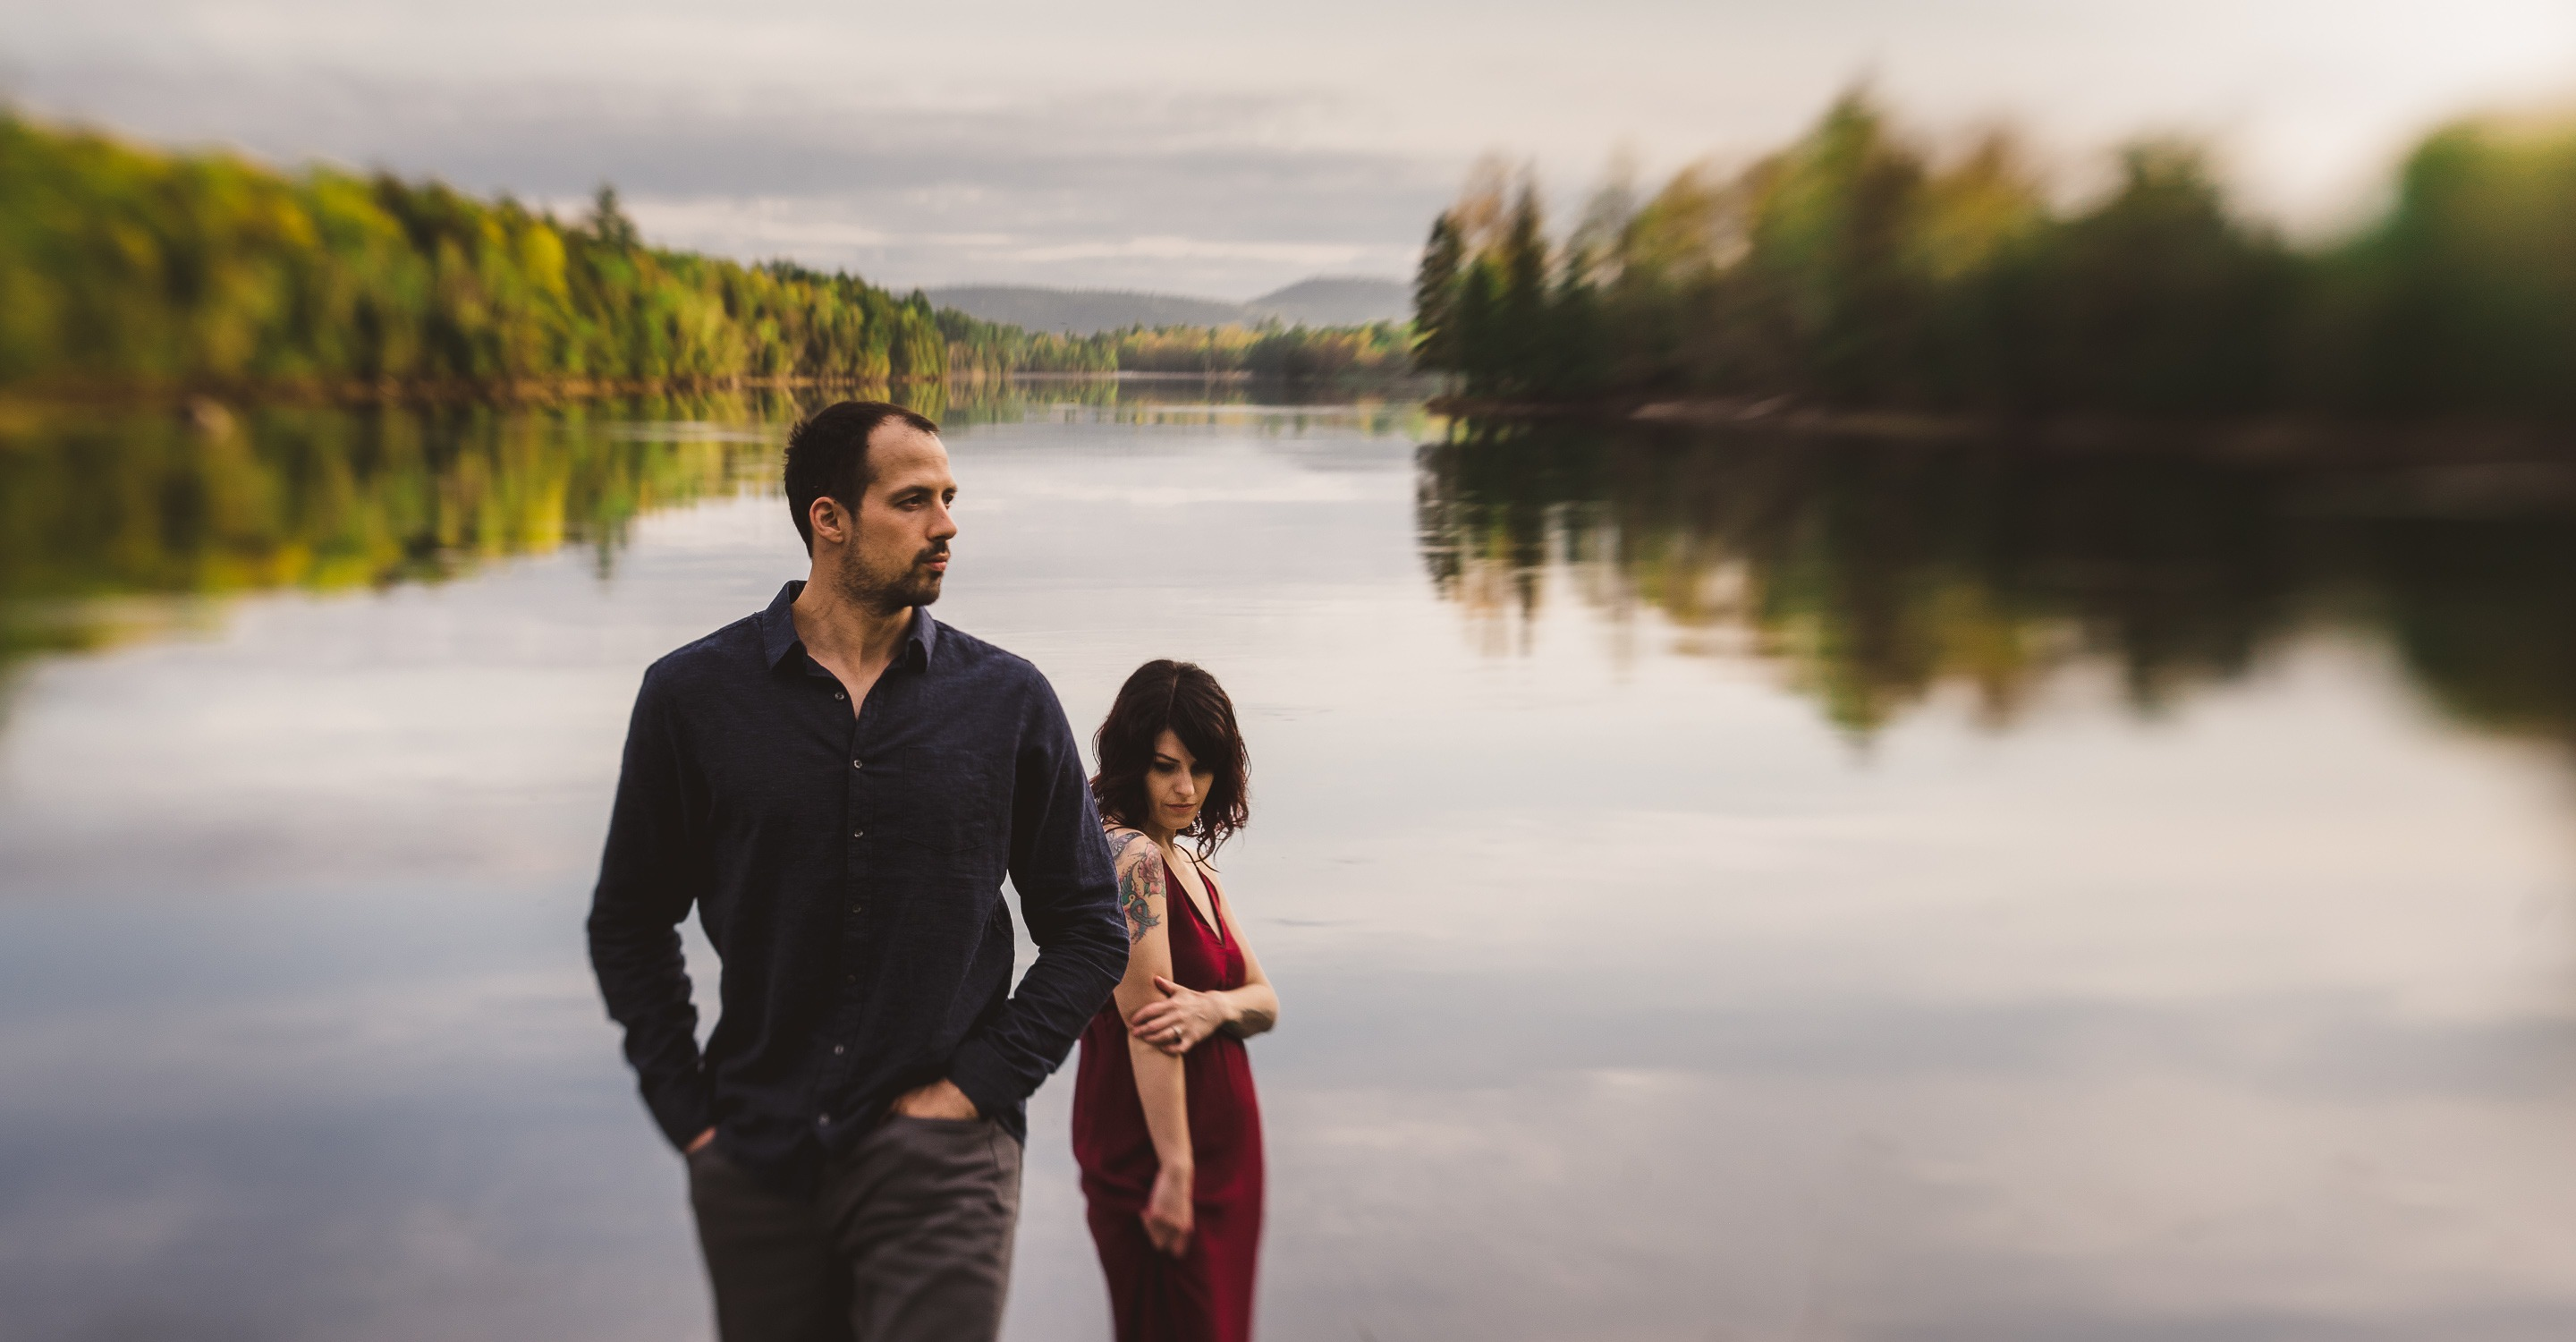 Couple pose in front of a river for their engagement session